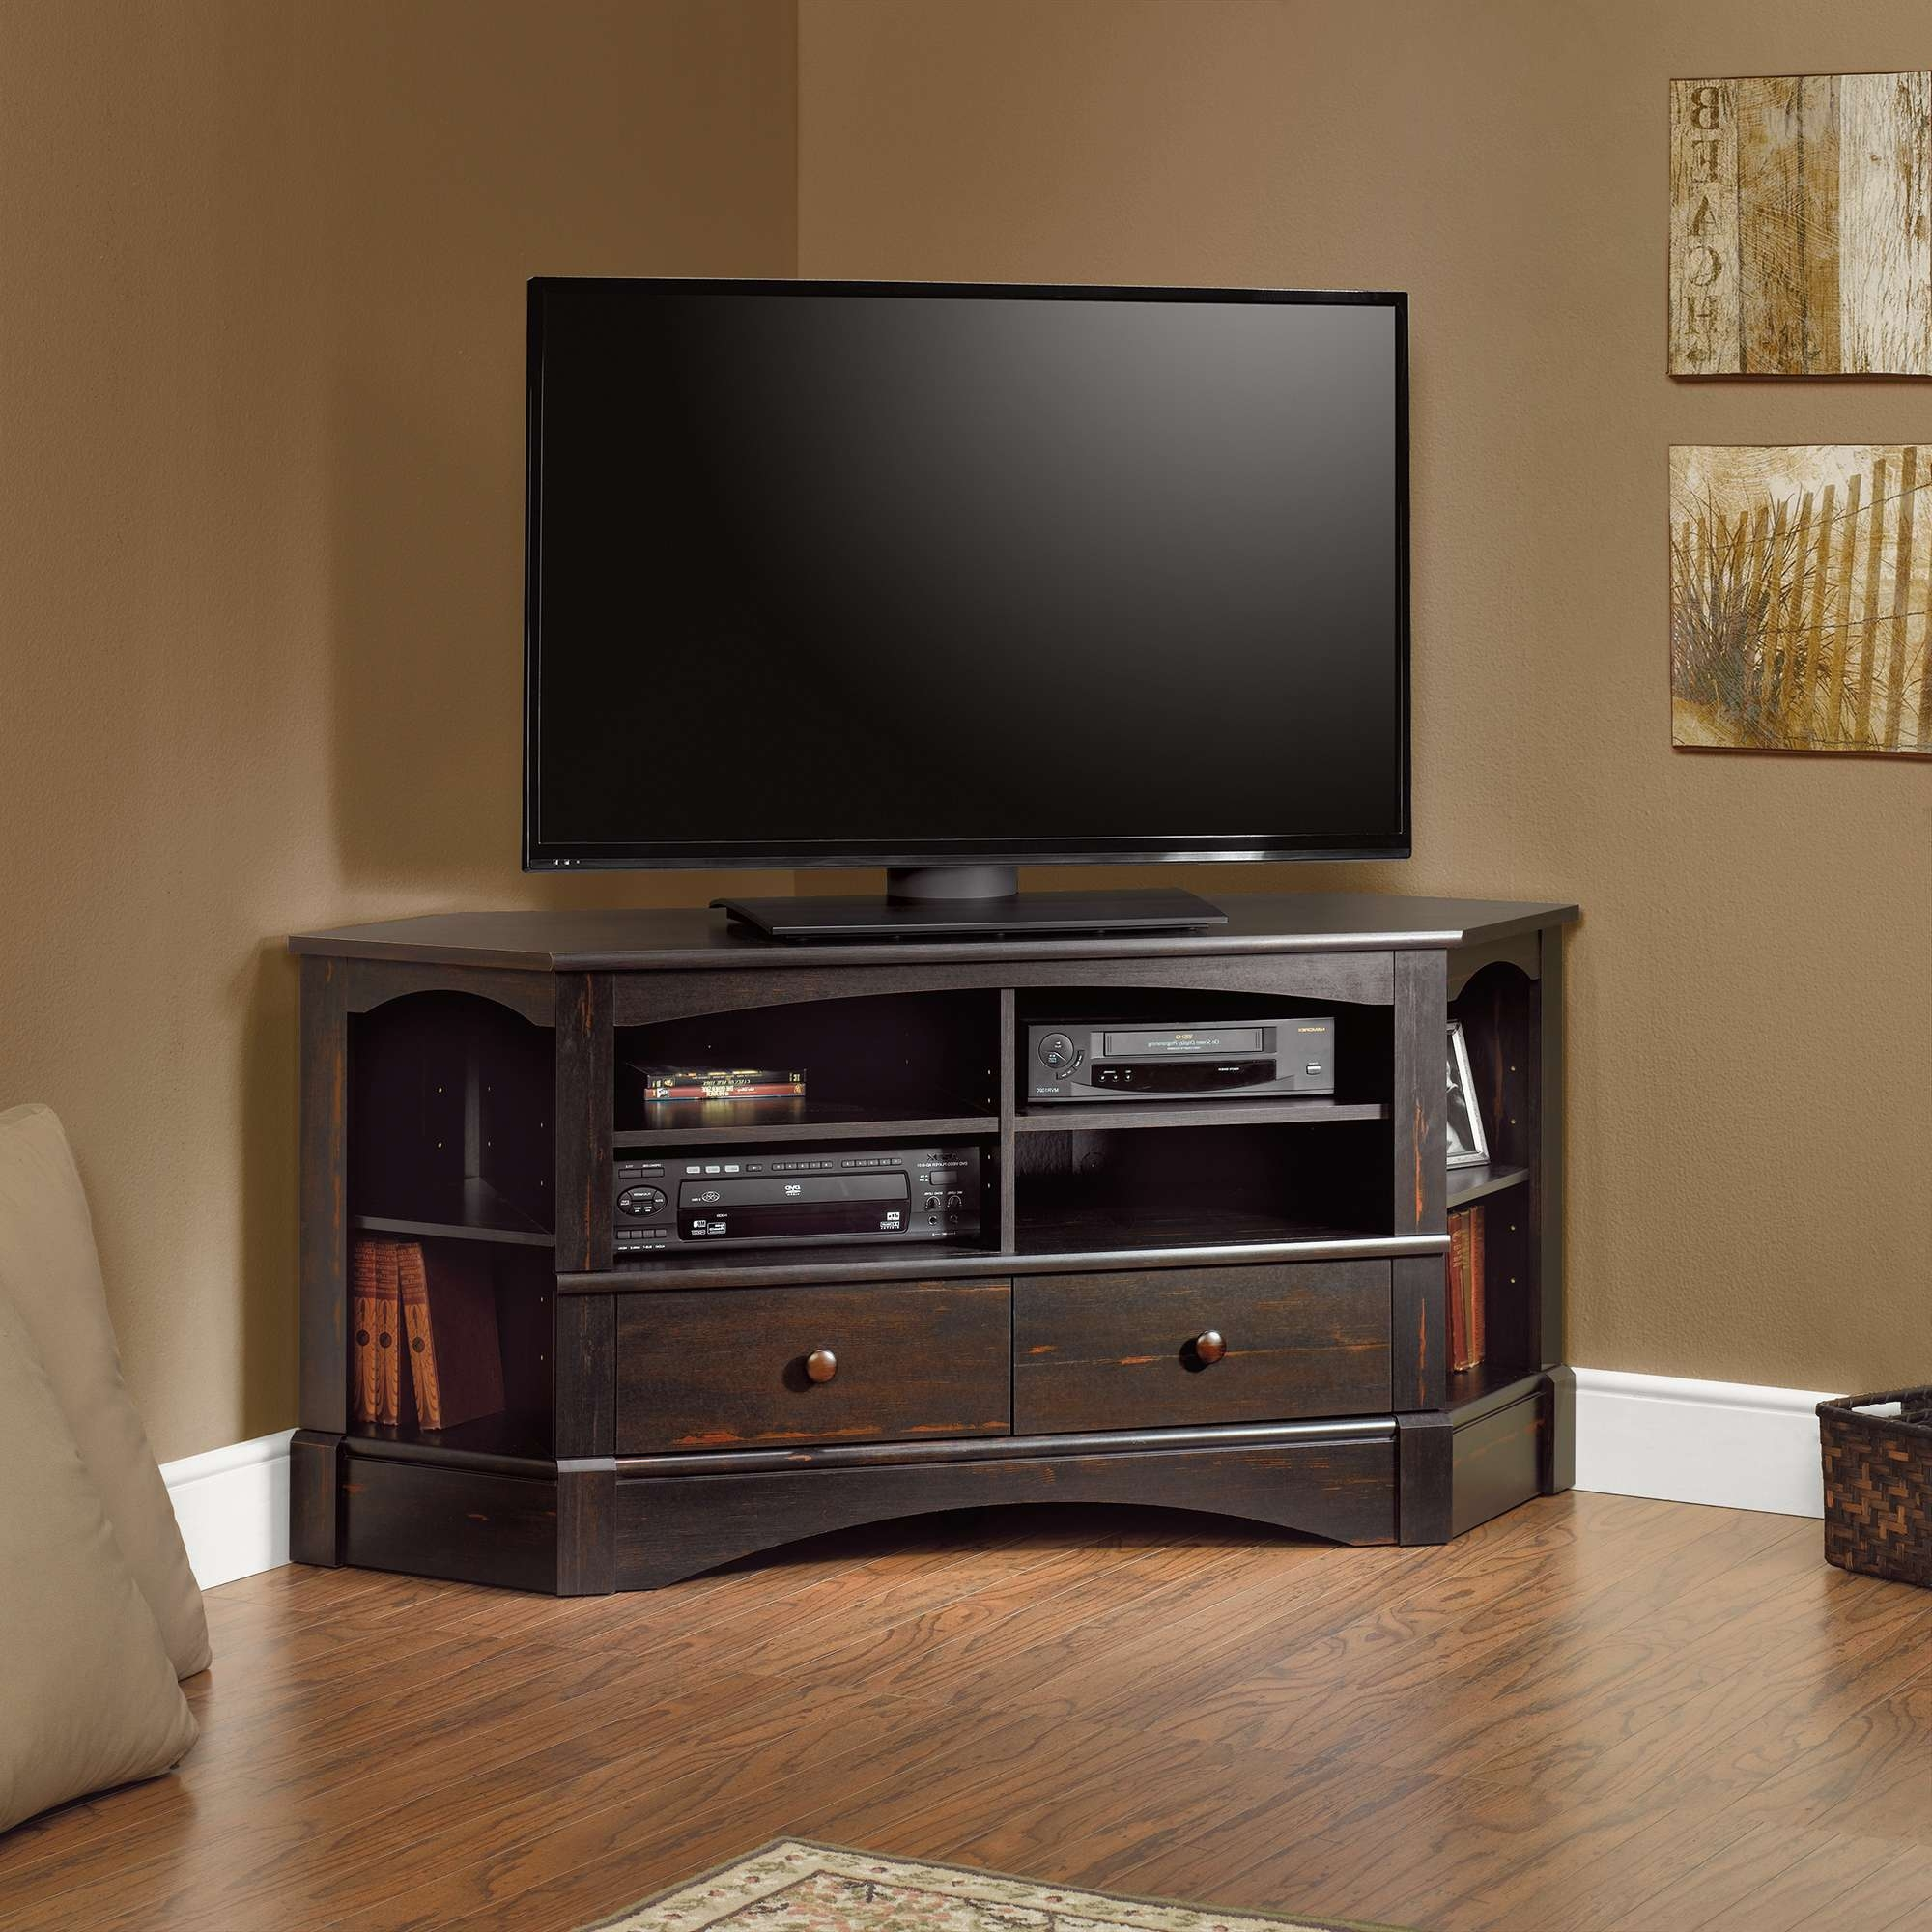 Harbor View | Corner Entertainment Credenza | 402902 | Sauder For Corner Tv Stands With Drawers (View 2 of 15)